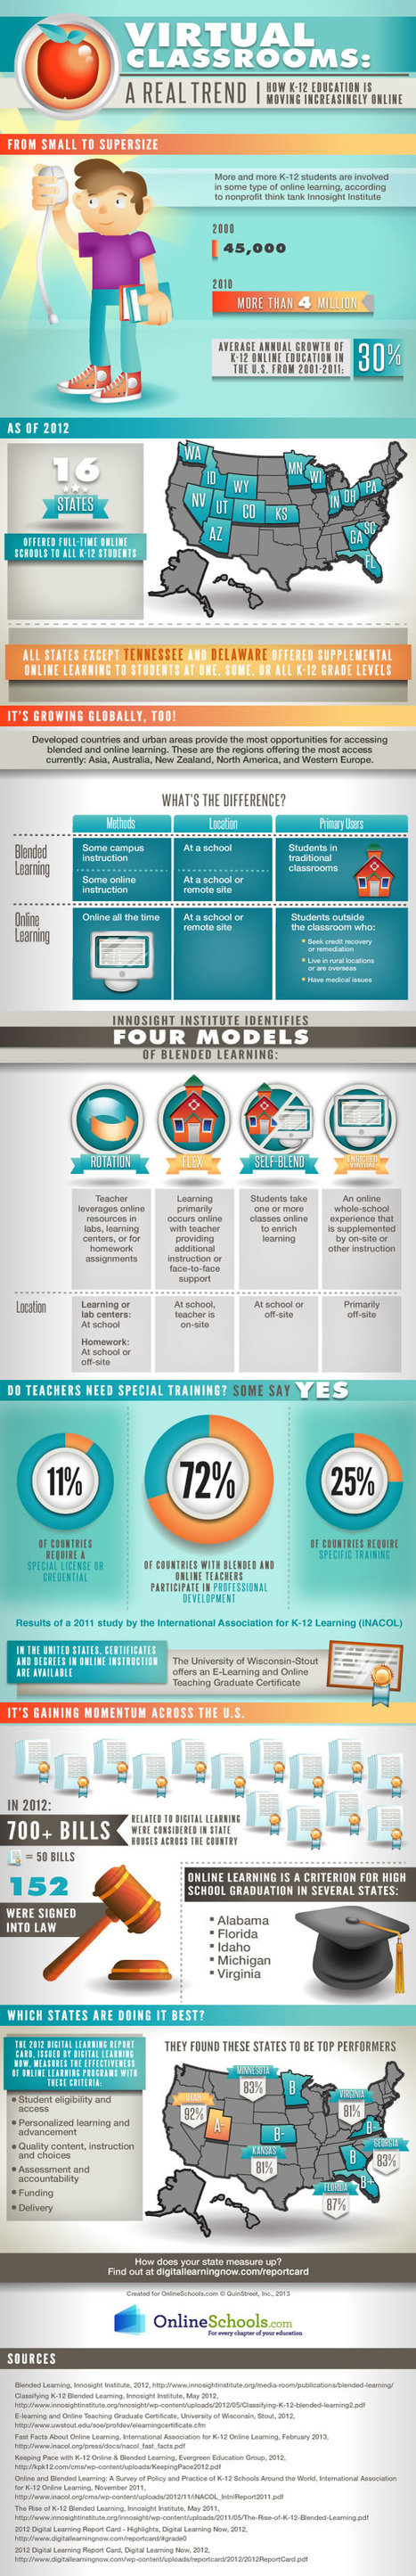 The Teacher's Quick Guide To Blended Learning [Infographic] | Docencia y TIC | Scoop.it